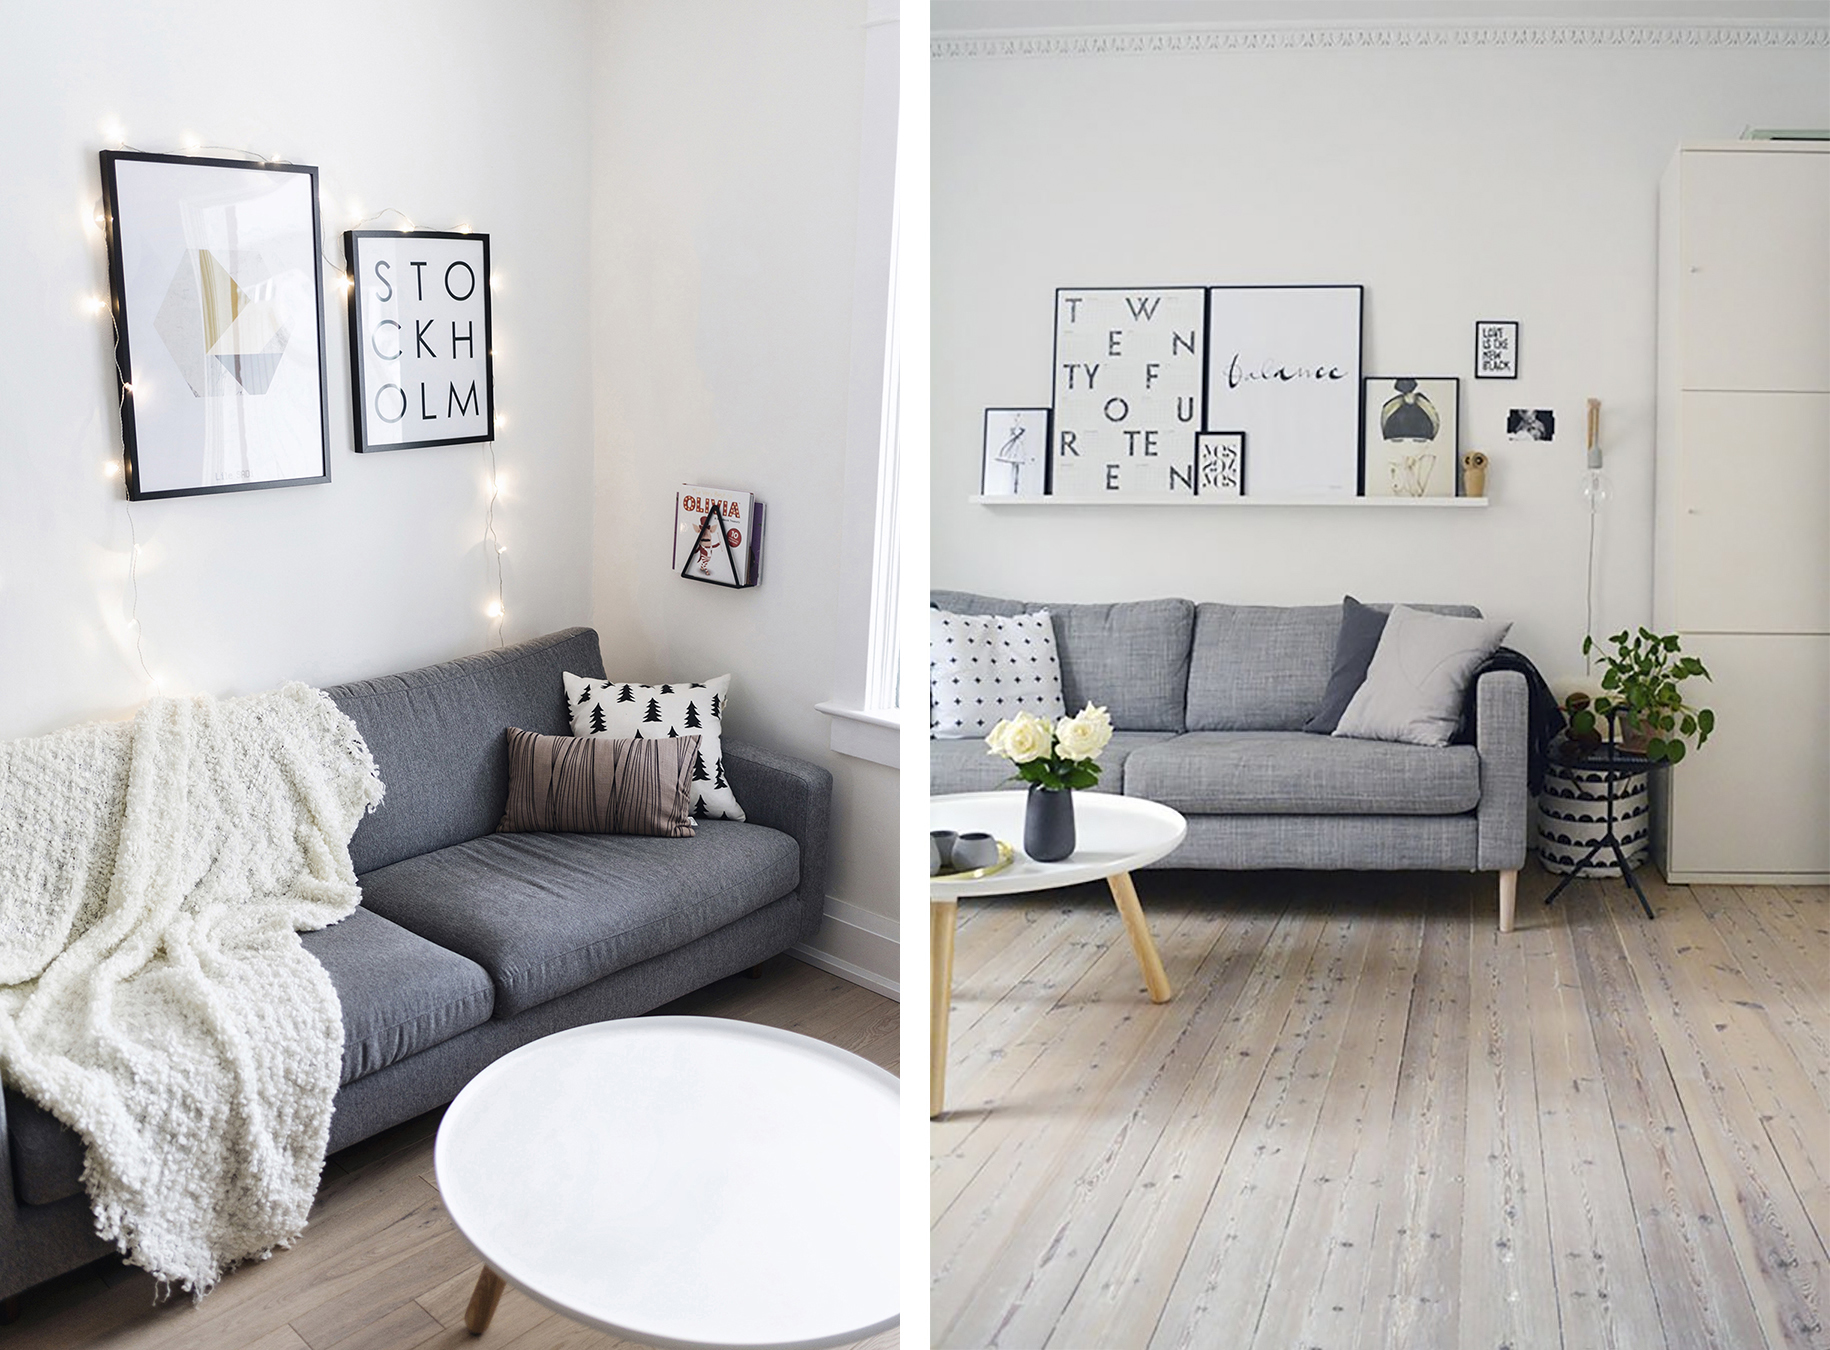 Top 10 Tips For Adding Scandinavian Style To Your Home on Mid Century Modern Living Room Wall